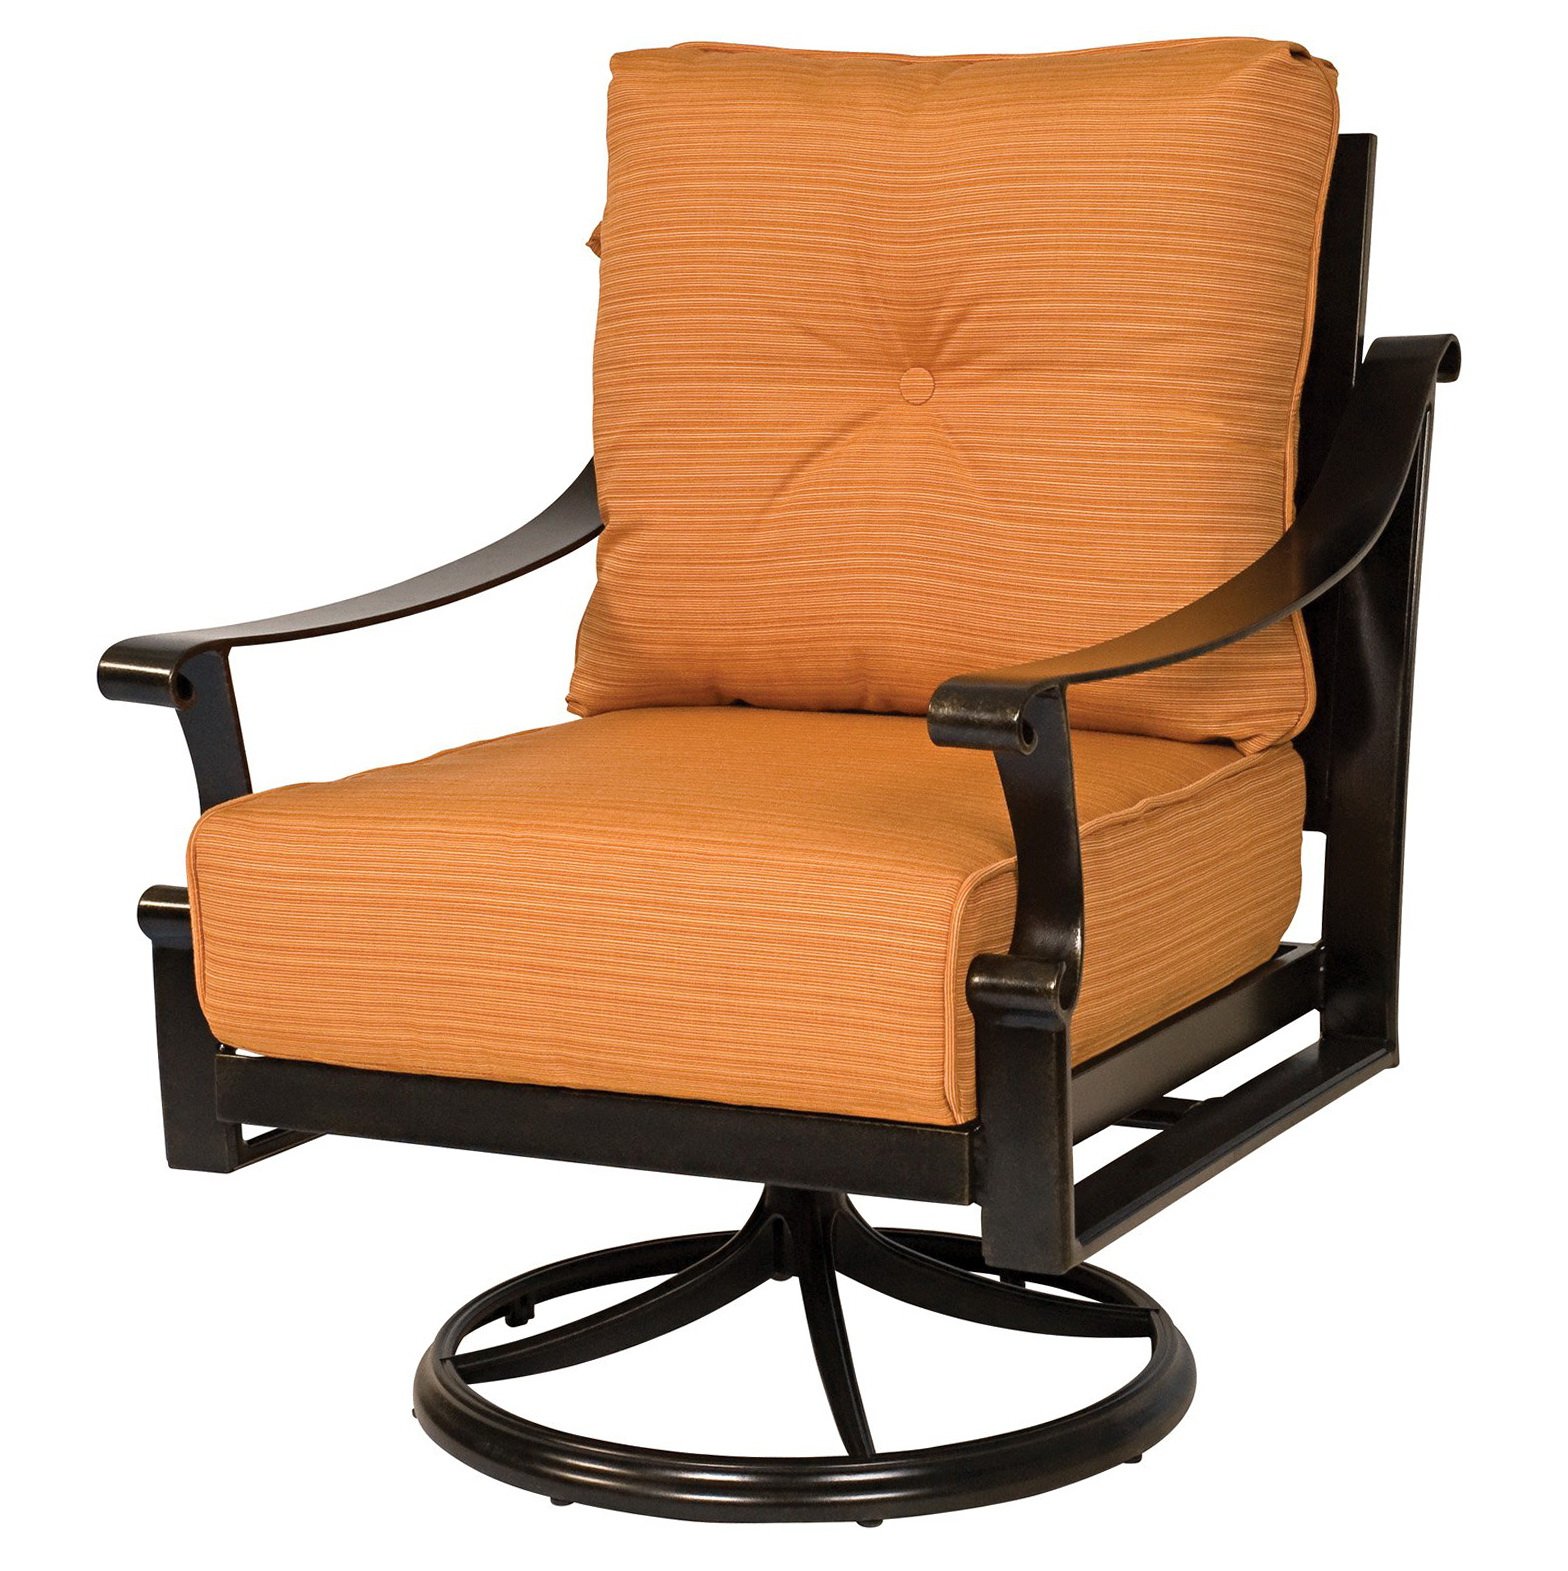 Swivel Rocker Cushion Patio Chairs